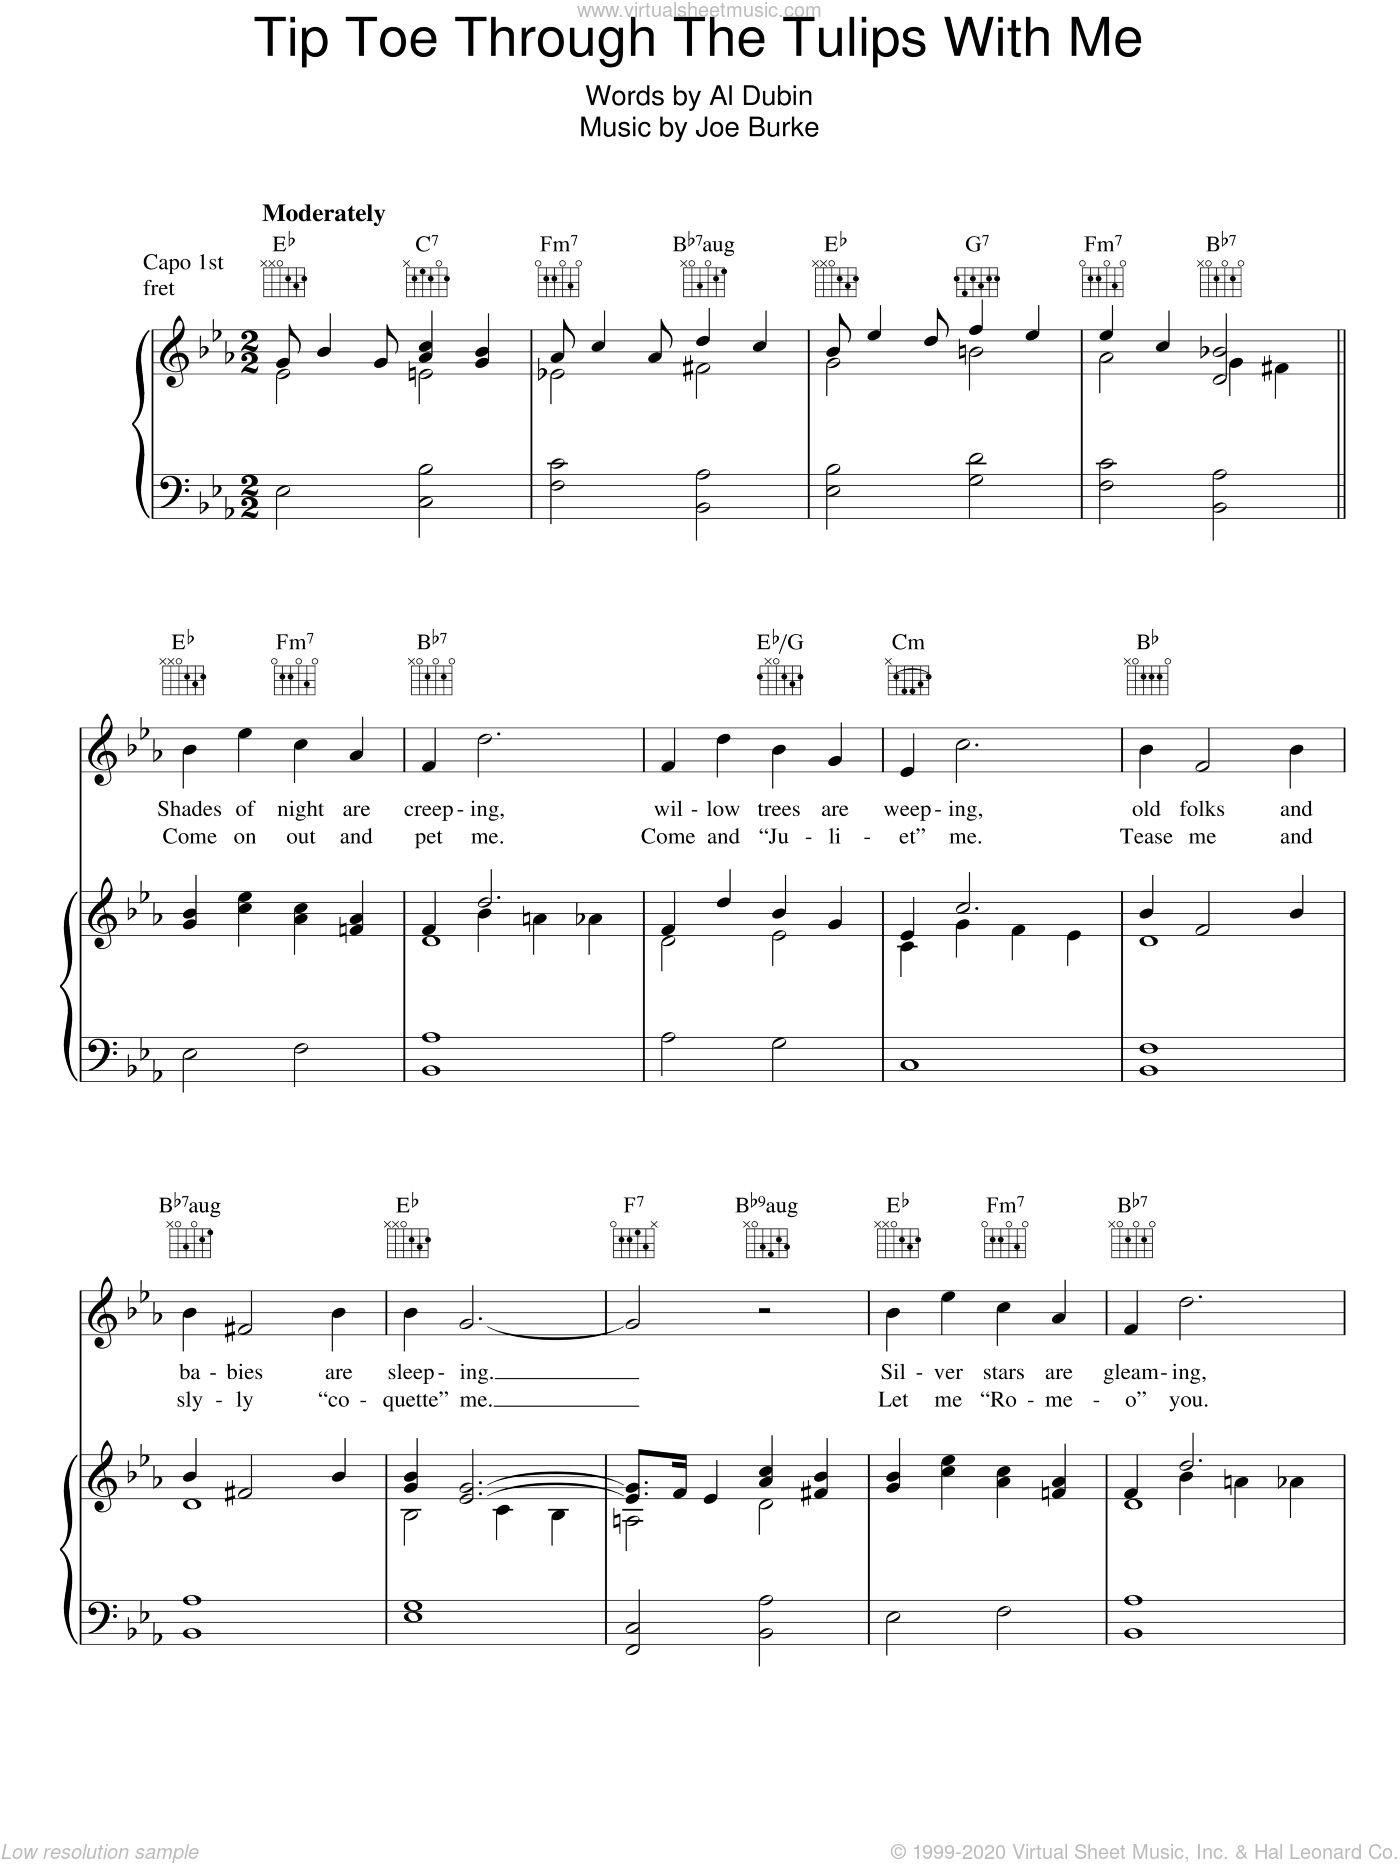 Tip-Toe Thru' The Tulips With Me Sheet Music For